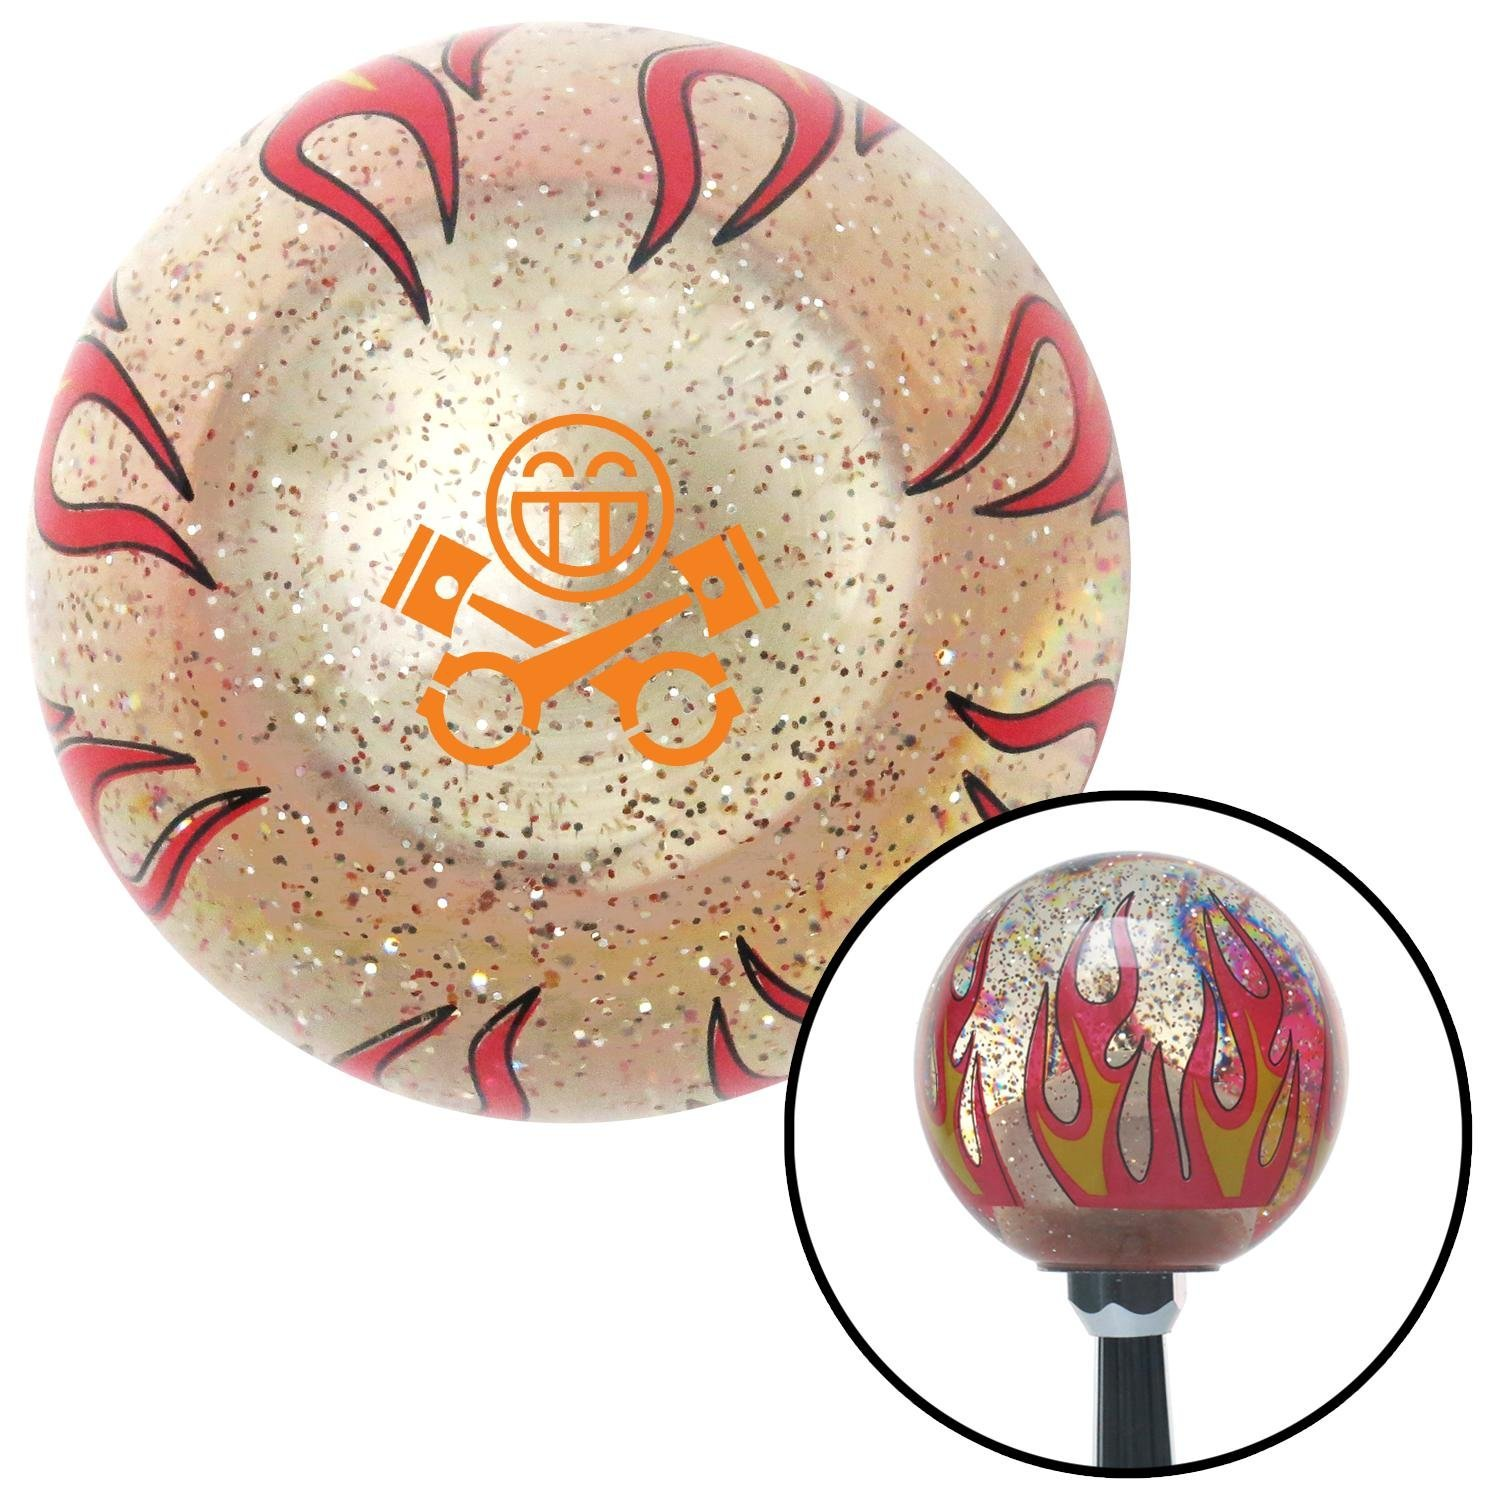 Orange Smiley Pistons Clear Flame Metal Flake with M16 x 1.5 Insert American Shifter 295872 Shift Knob